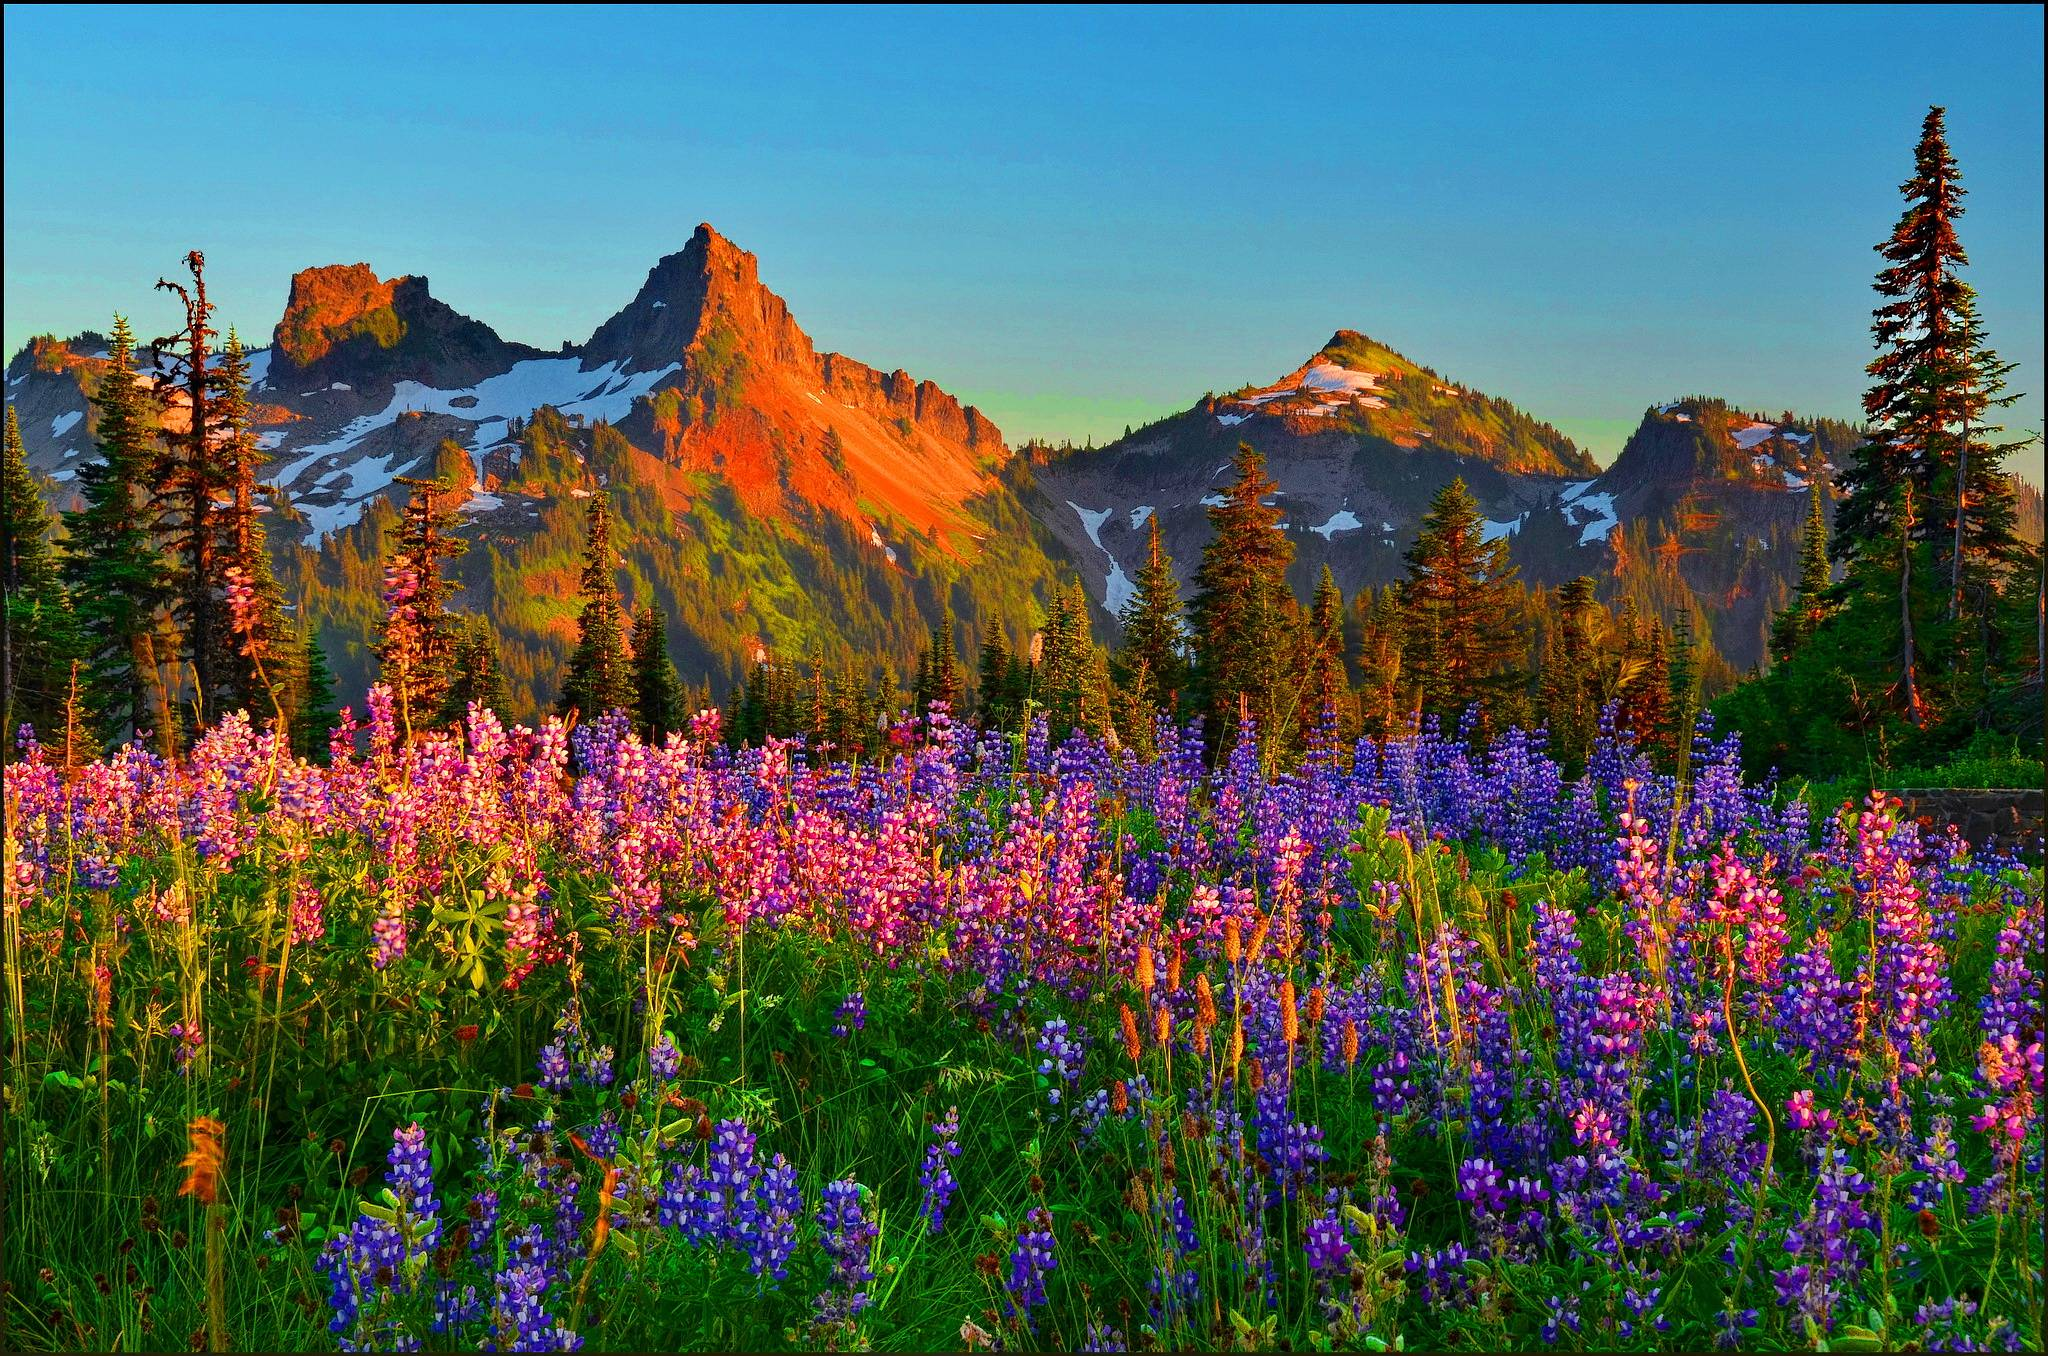 Mountain Wildflowers HD Wallpaper | Background Image | 2048x1356 | ID:677738 - Wallpaper Abyss